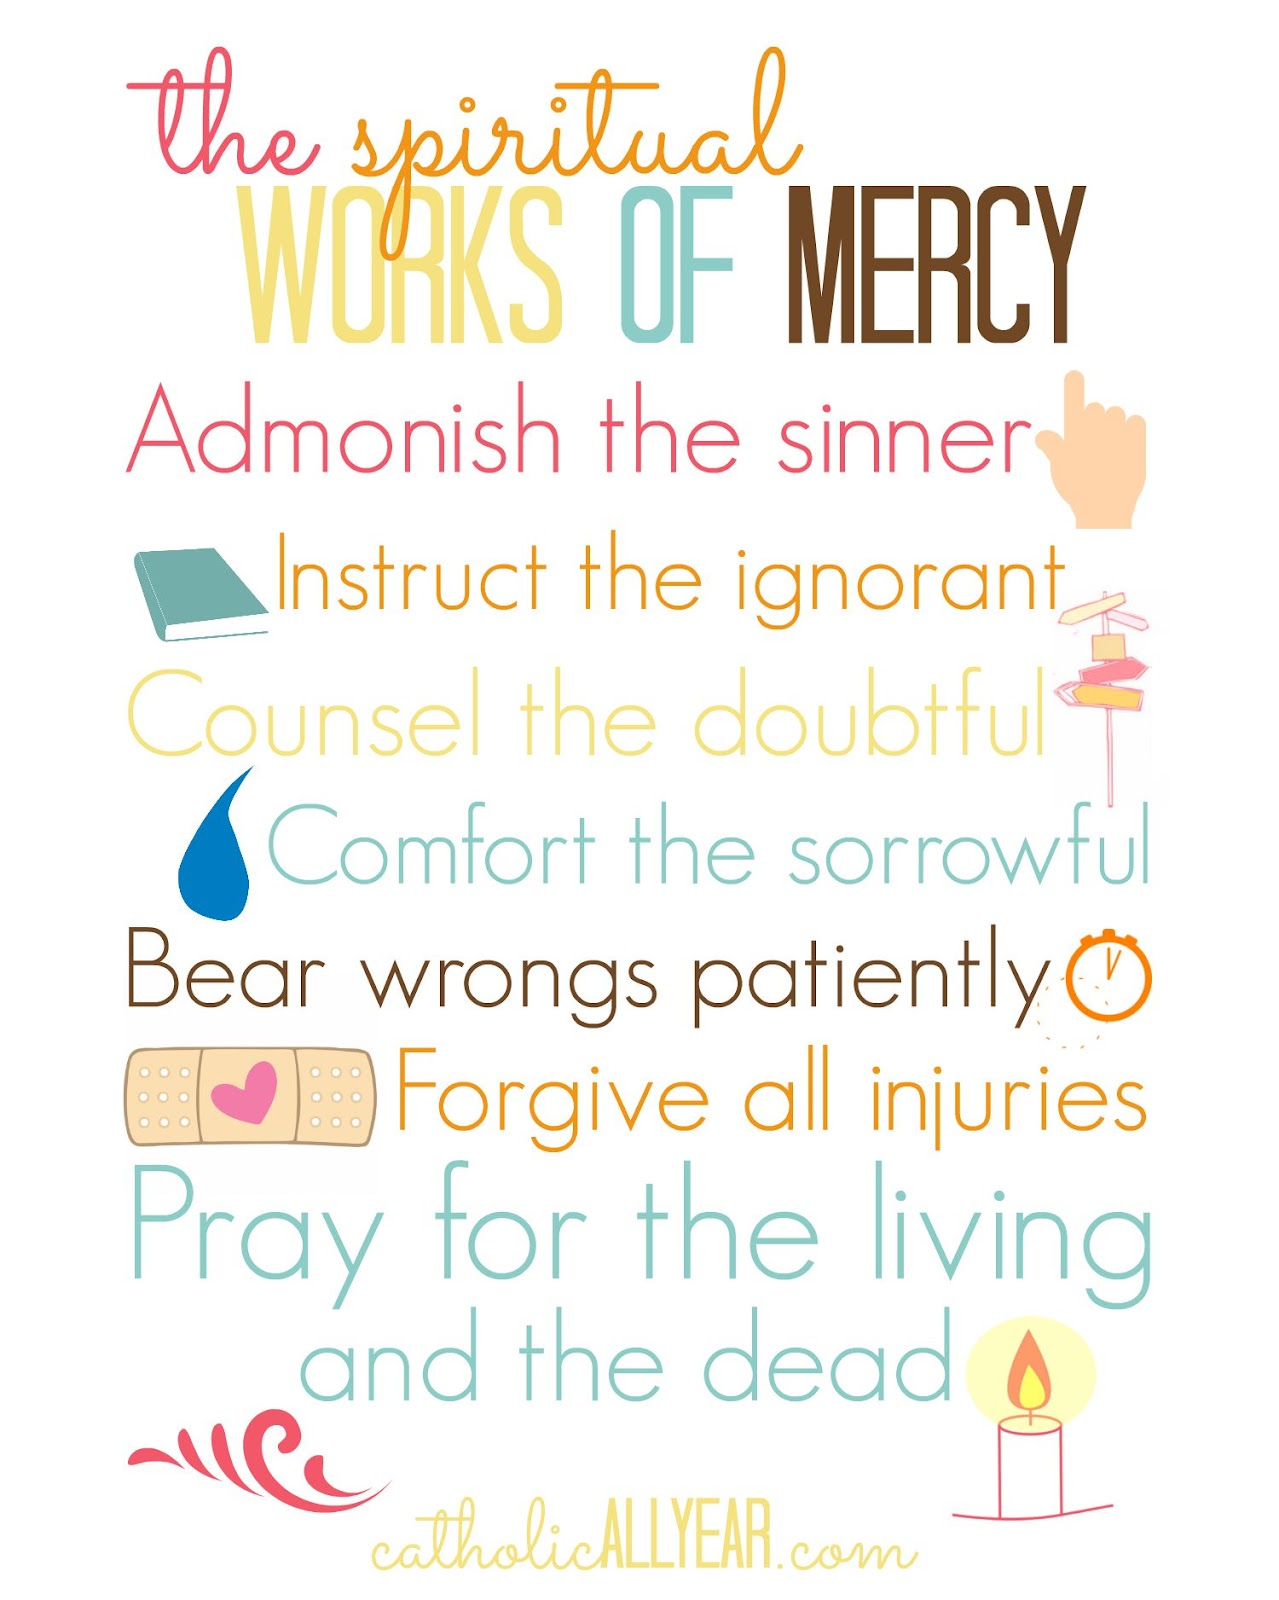 04 mar 2013 spiritual & corporal works of mercy |Spiritual Works Of Mercy Comfort The Sorrowful